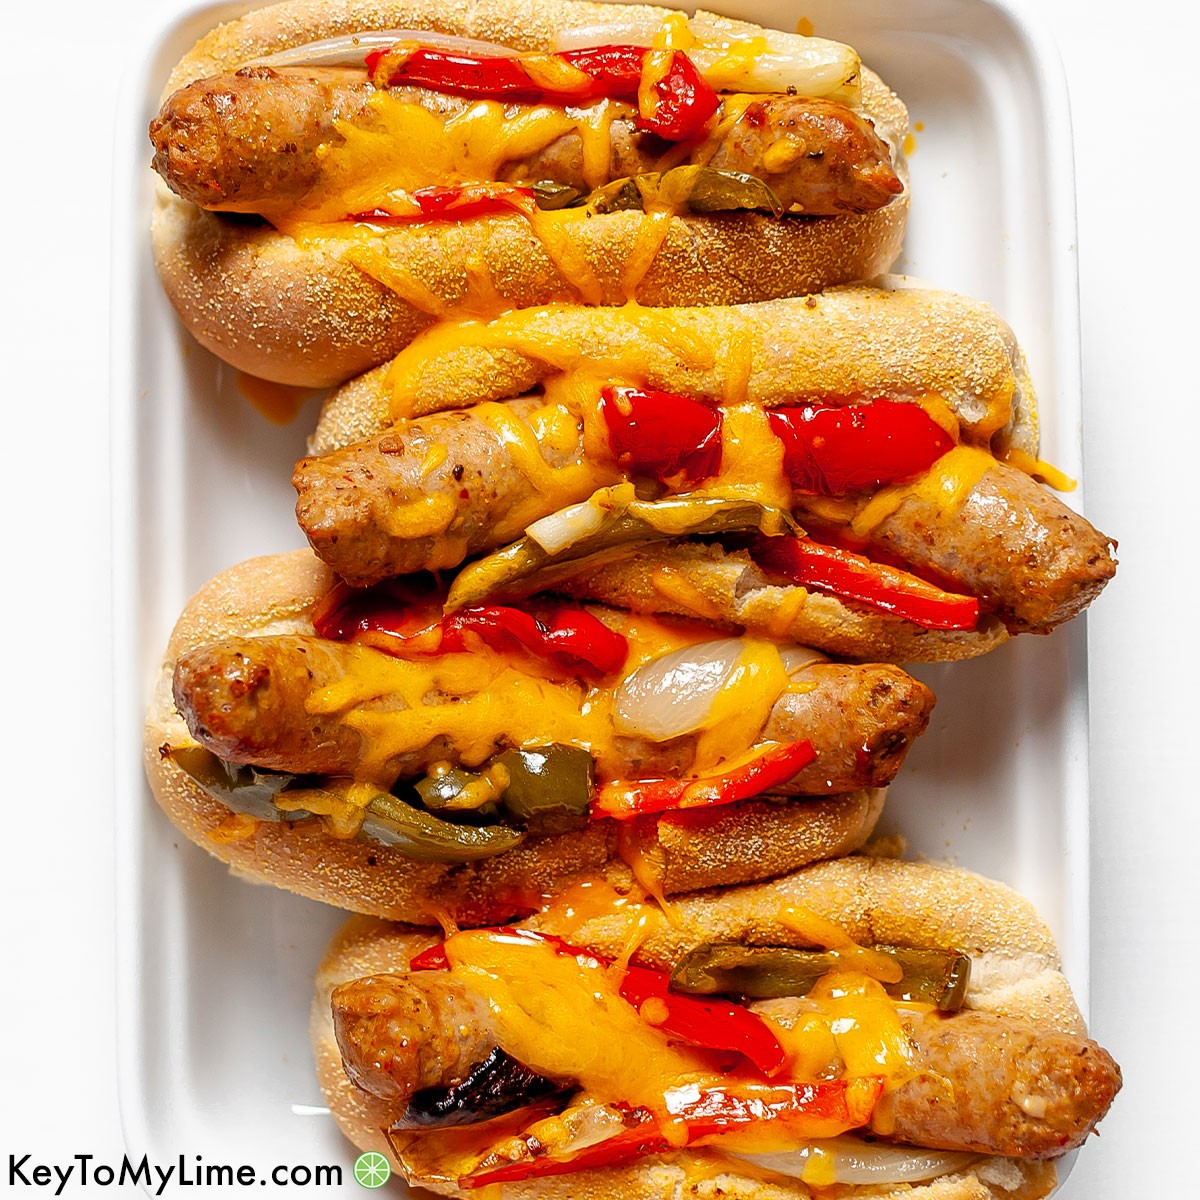 The best brats in oven recipe.